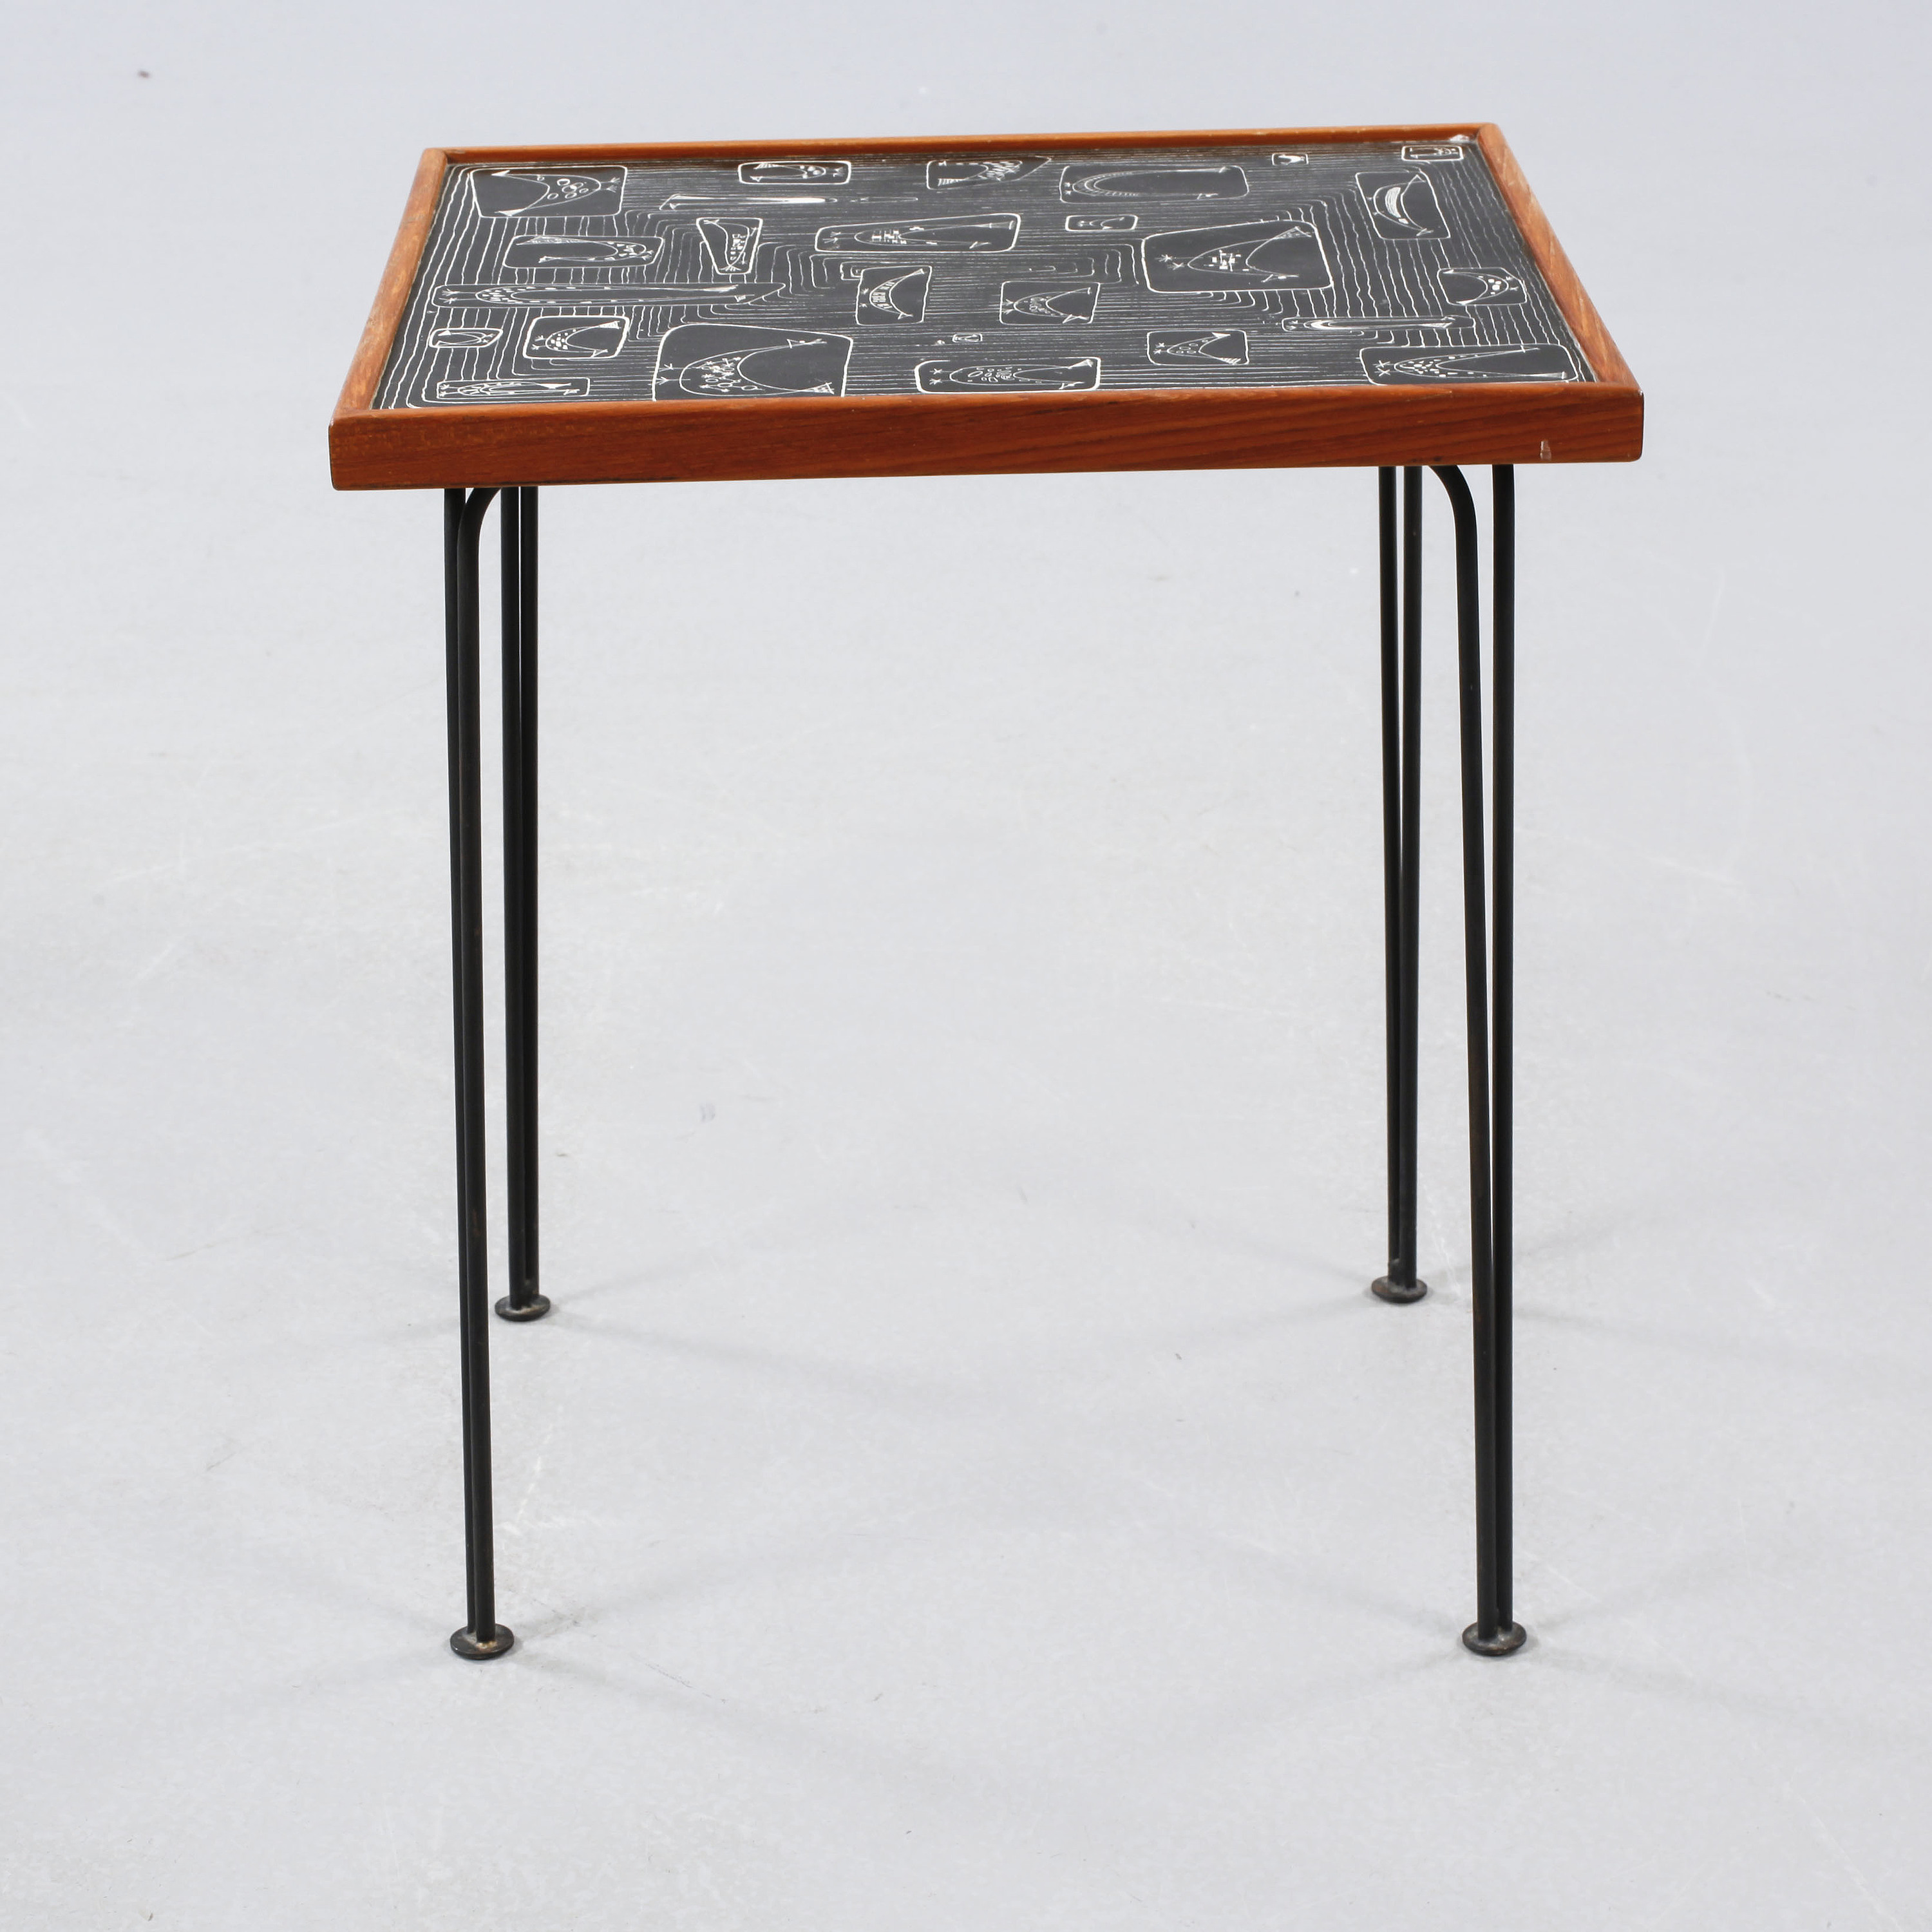 A table, model 809, desinged by Hans-Agne Jakobsson for Hans